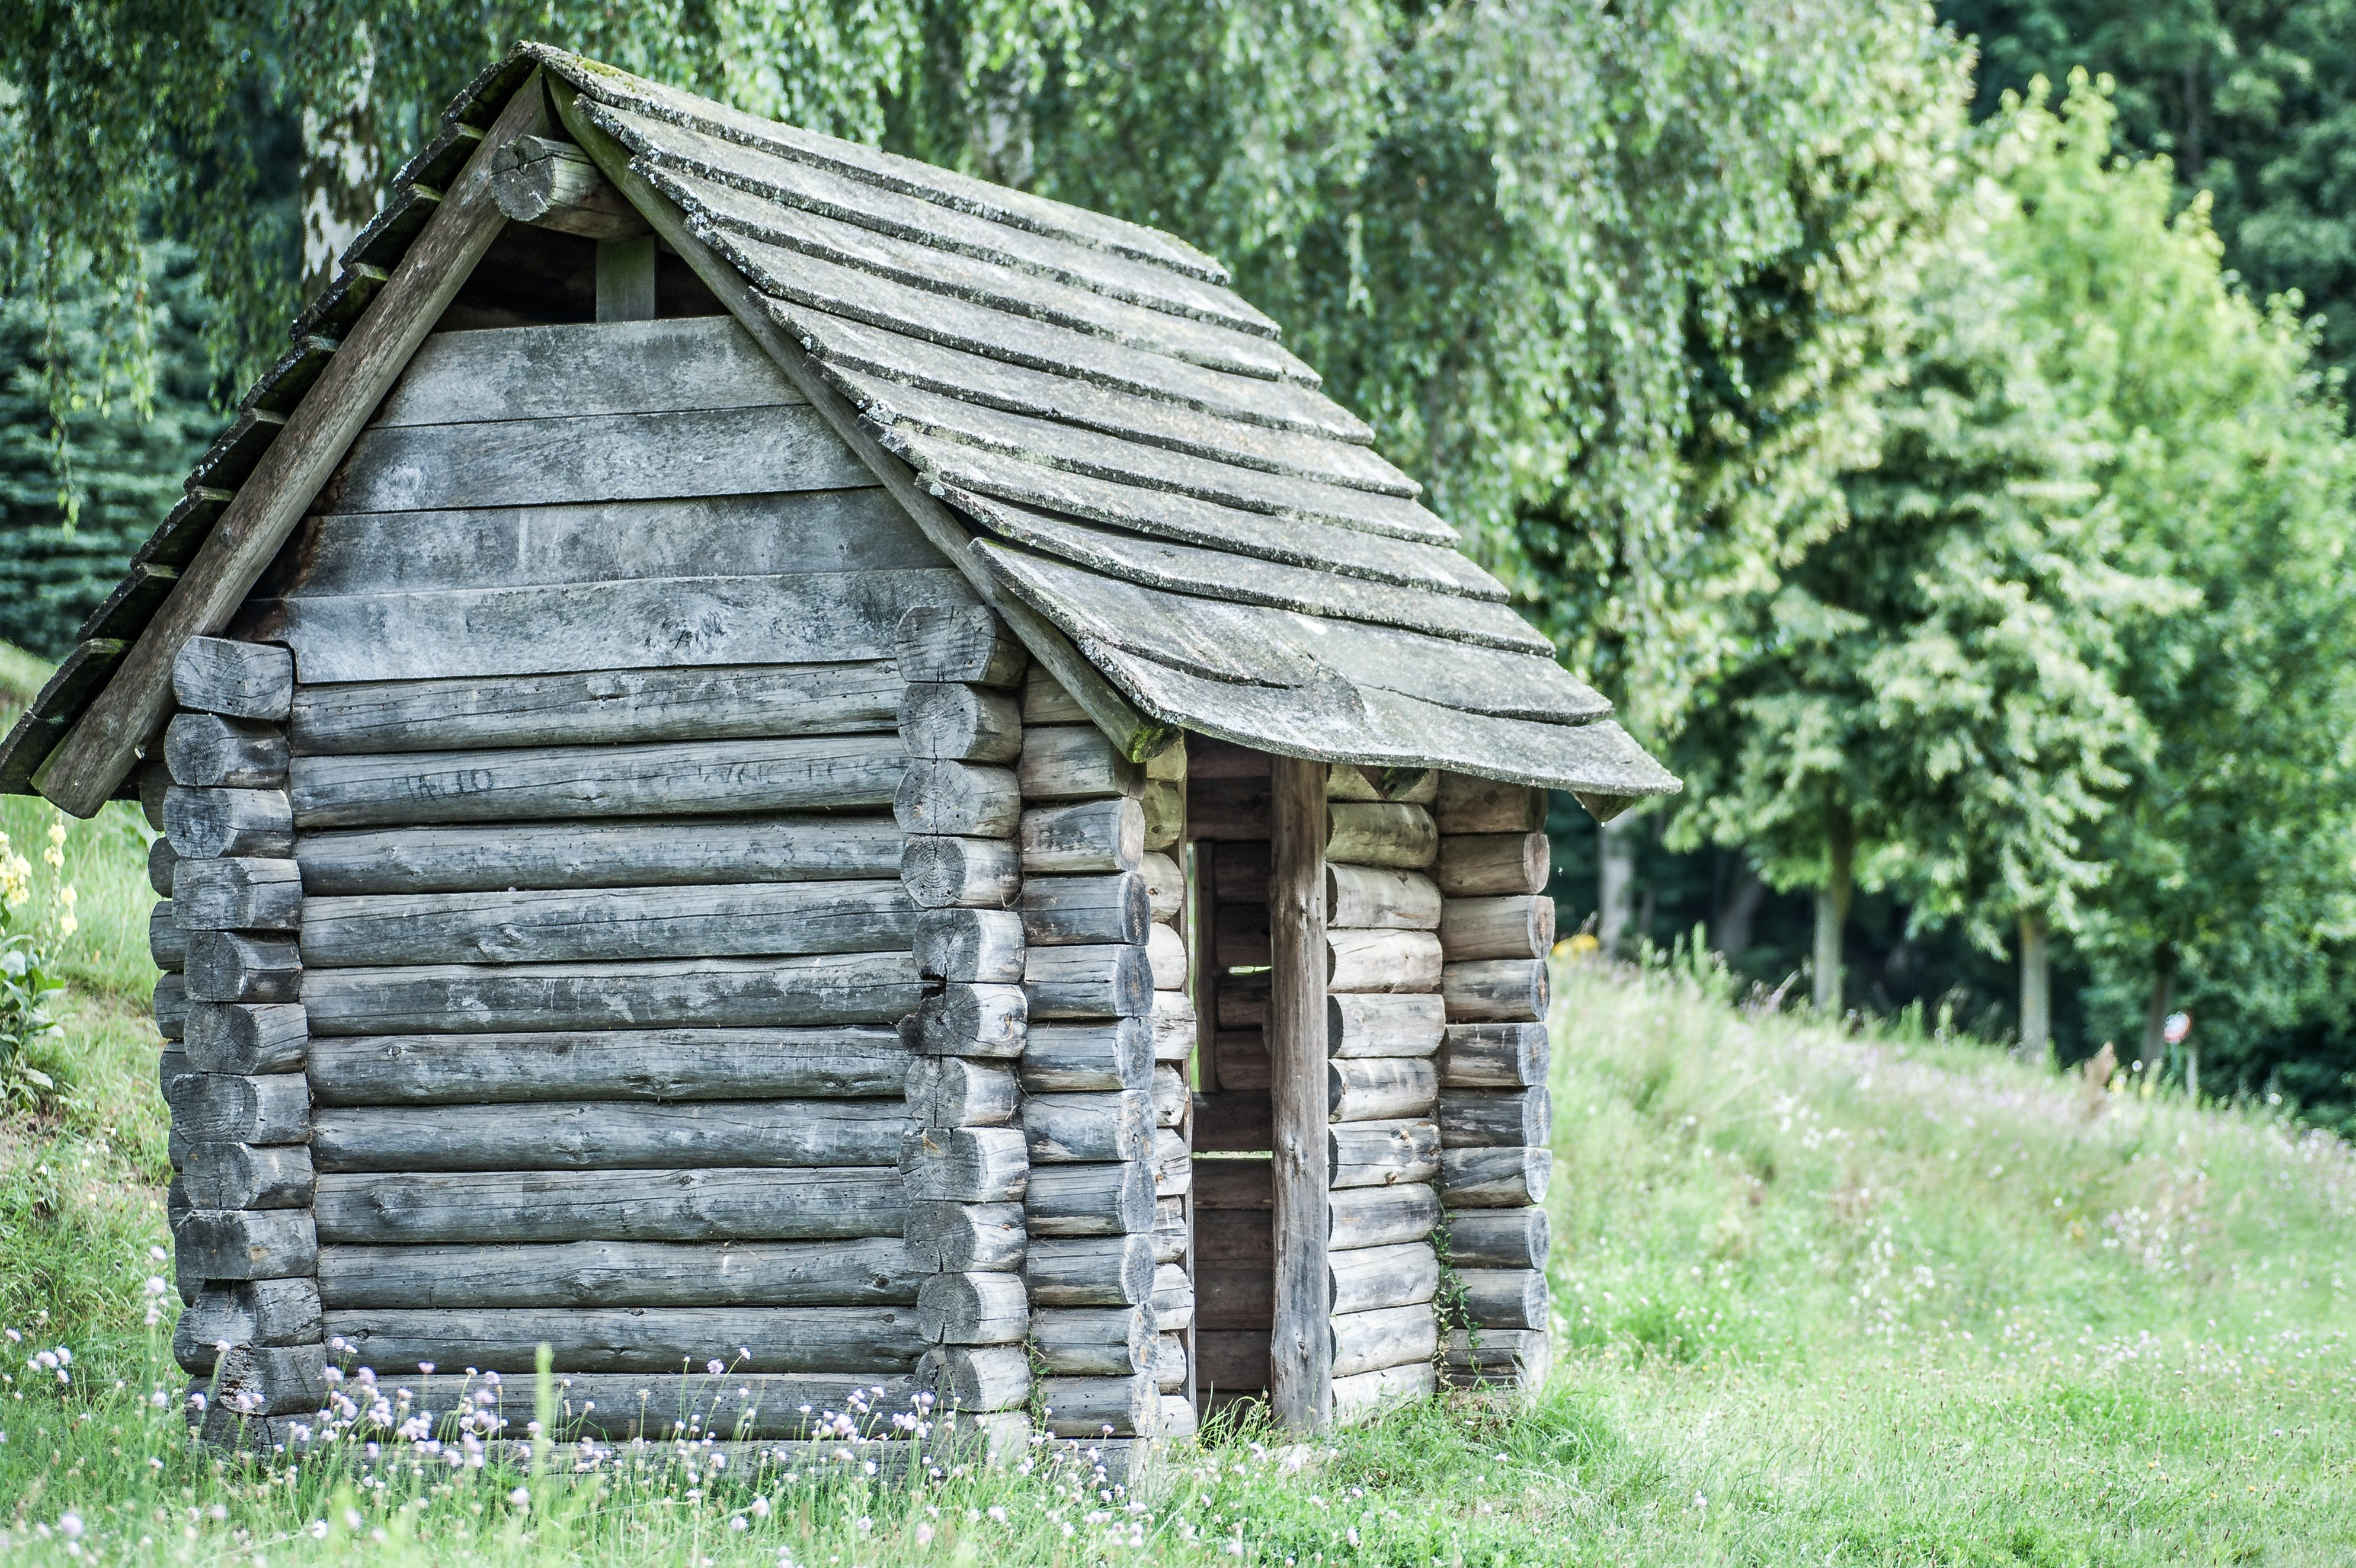 Brown Wooden Shed Near Trees